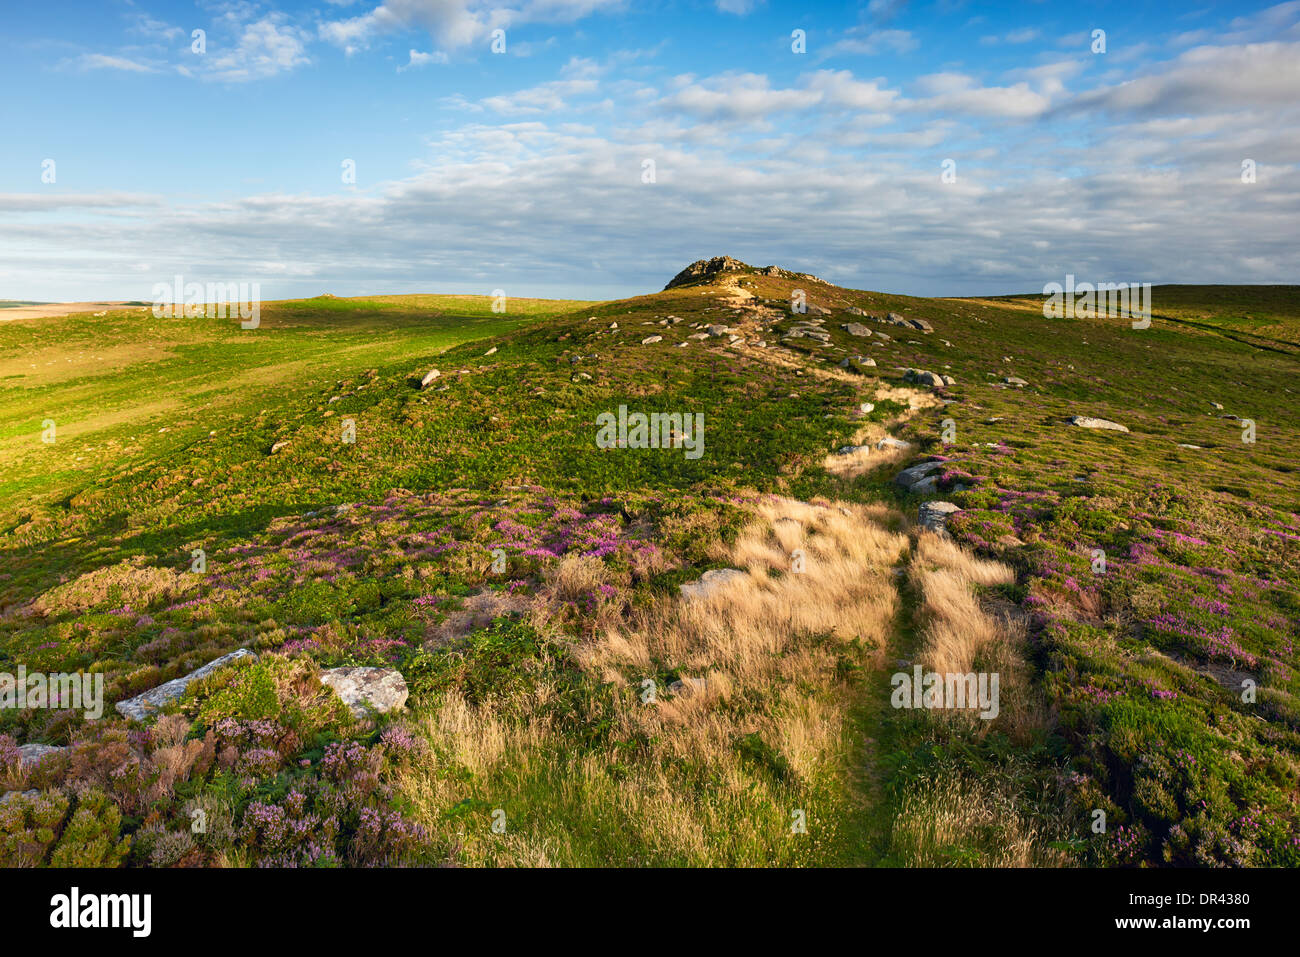 View overlooking West Penwith Moorland. A mix of Heather, Gorse and grasses growing amongst the granite outcrops. - Stock Image